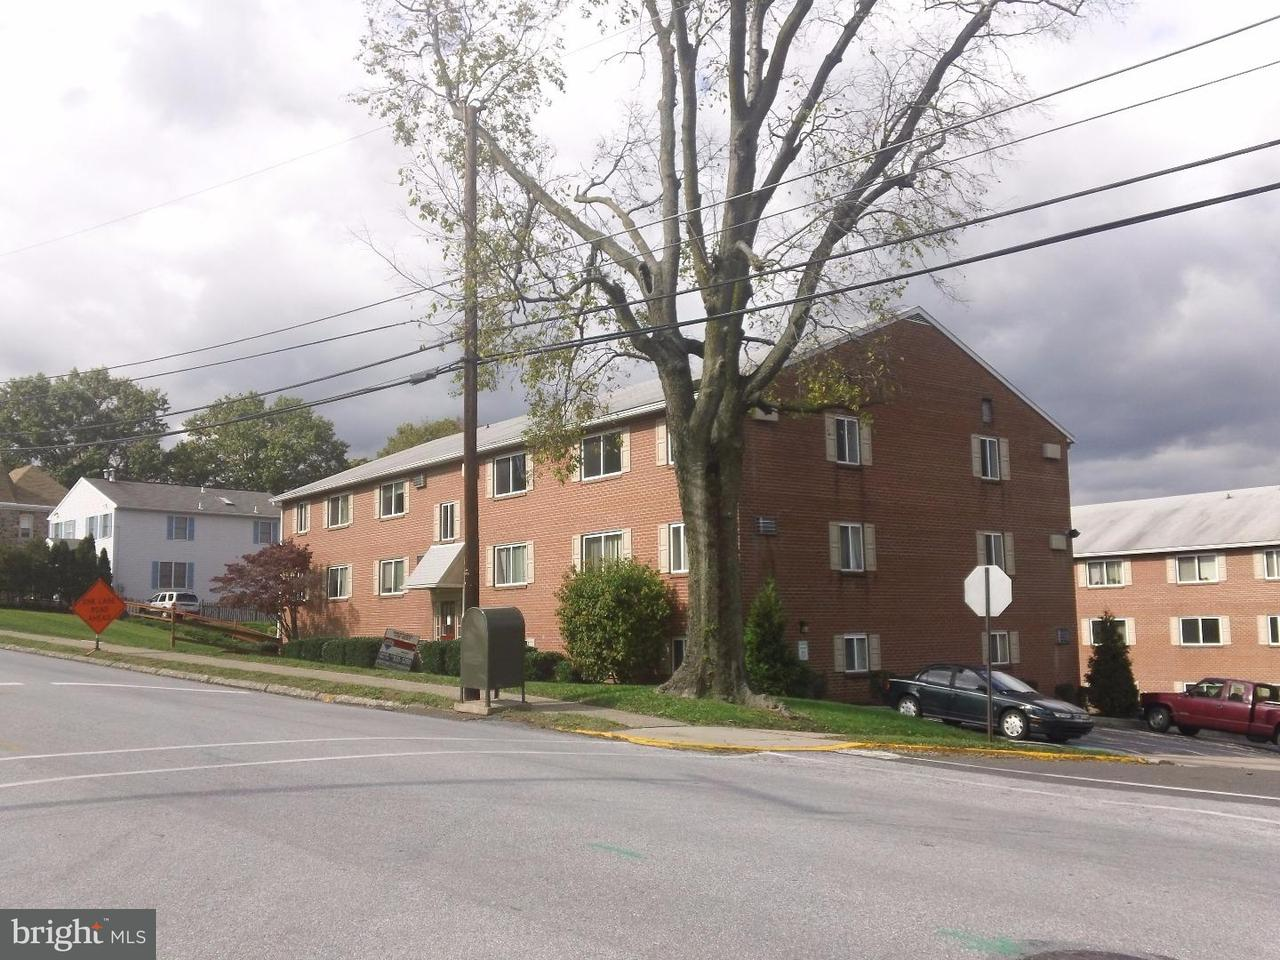 Single Family Home for Rent at 120 N PENN ST #B11 Spring City, Pennsylvania 19475 United States